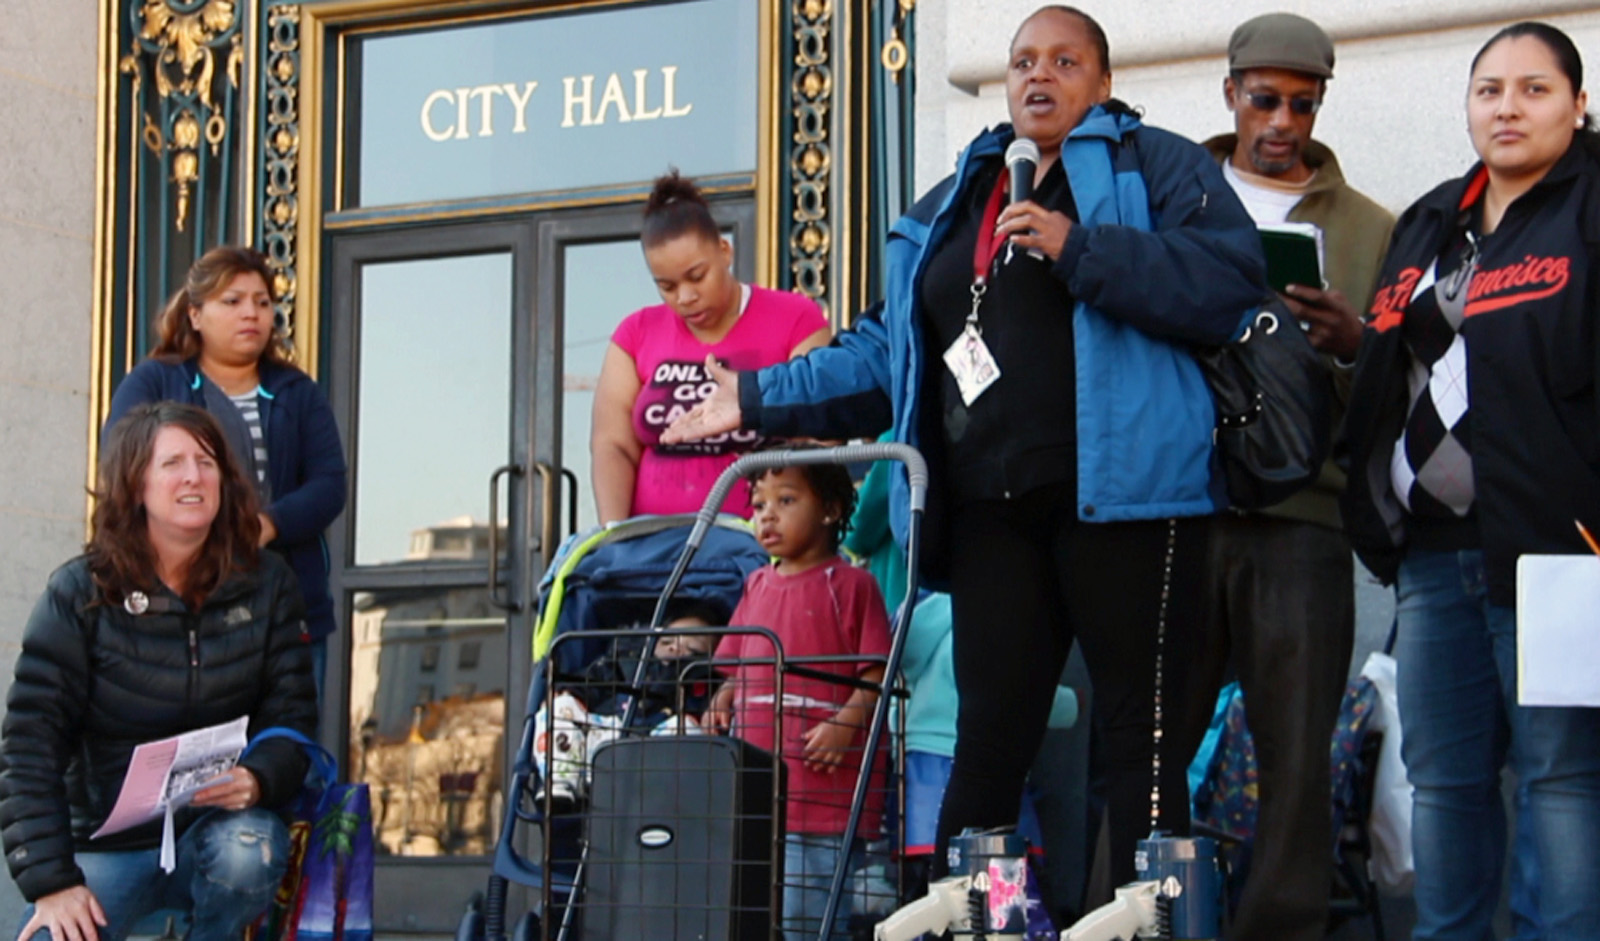 Homeless parents gather to share their concerns outside of City Hall before demanding to schedule a meeting with Mayor Ed Lee. Photo by Ryan Loughlin.